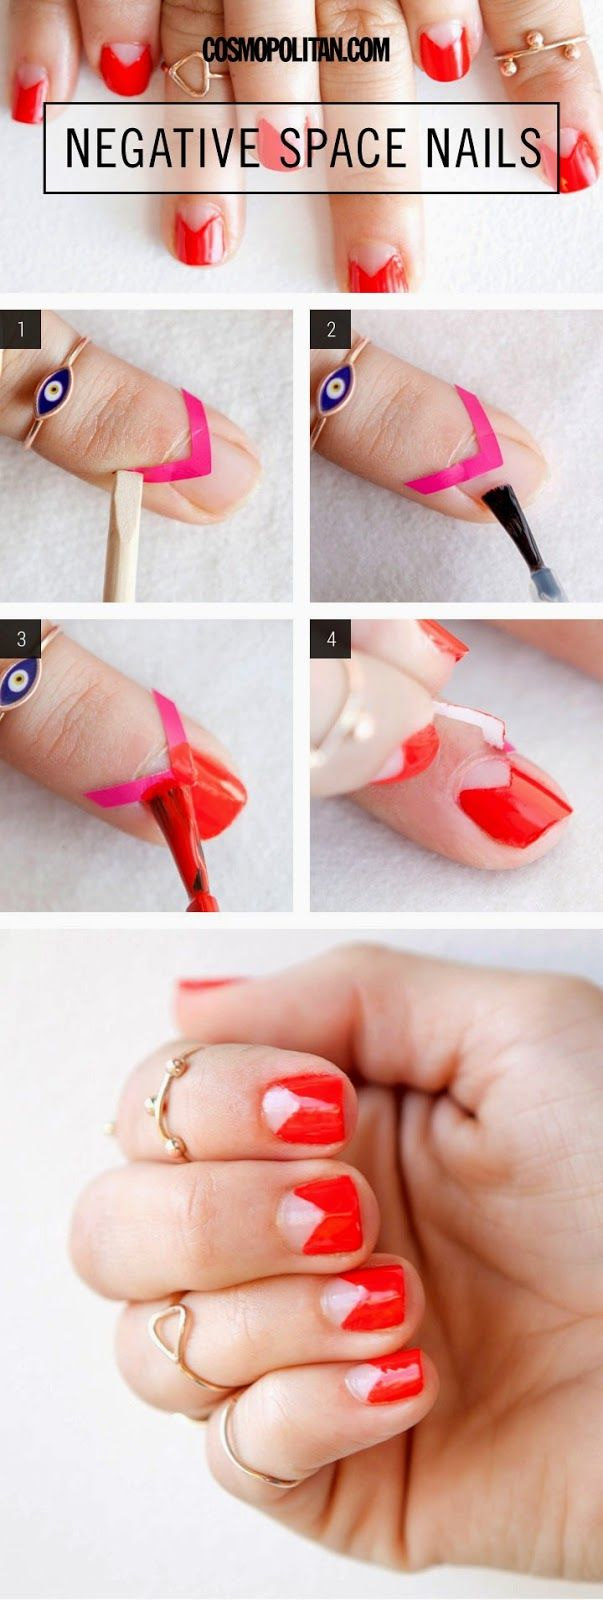 Nail Designs: Nail Designs - tutorial